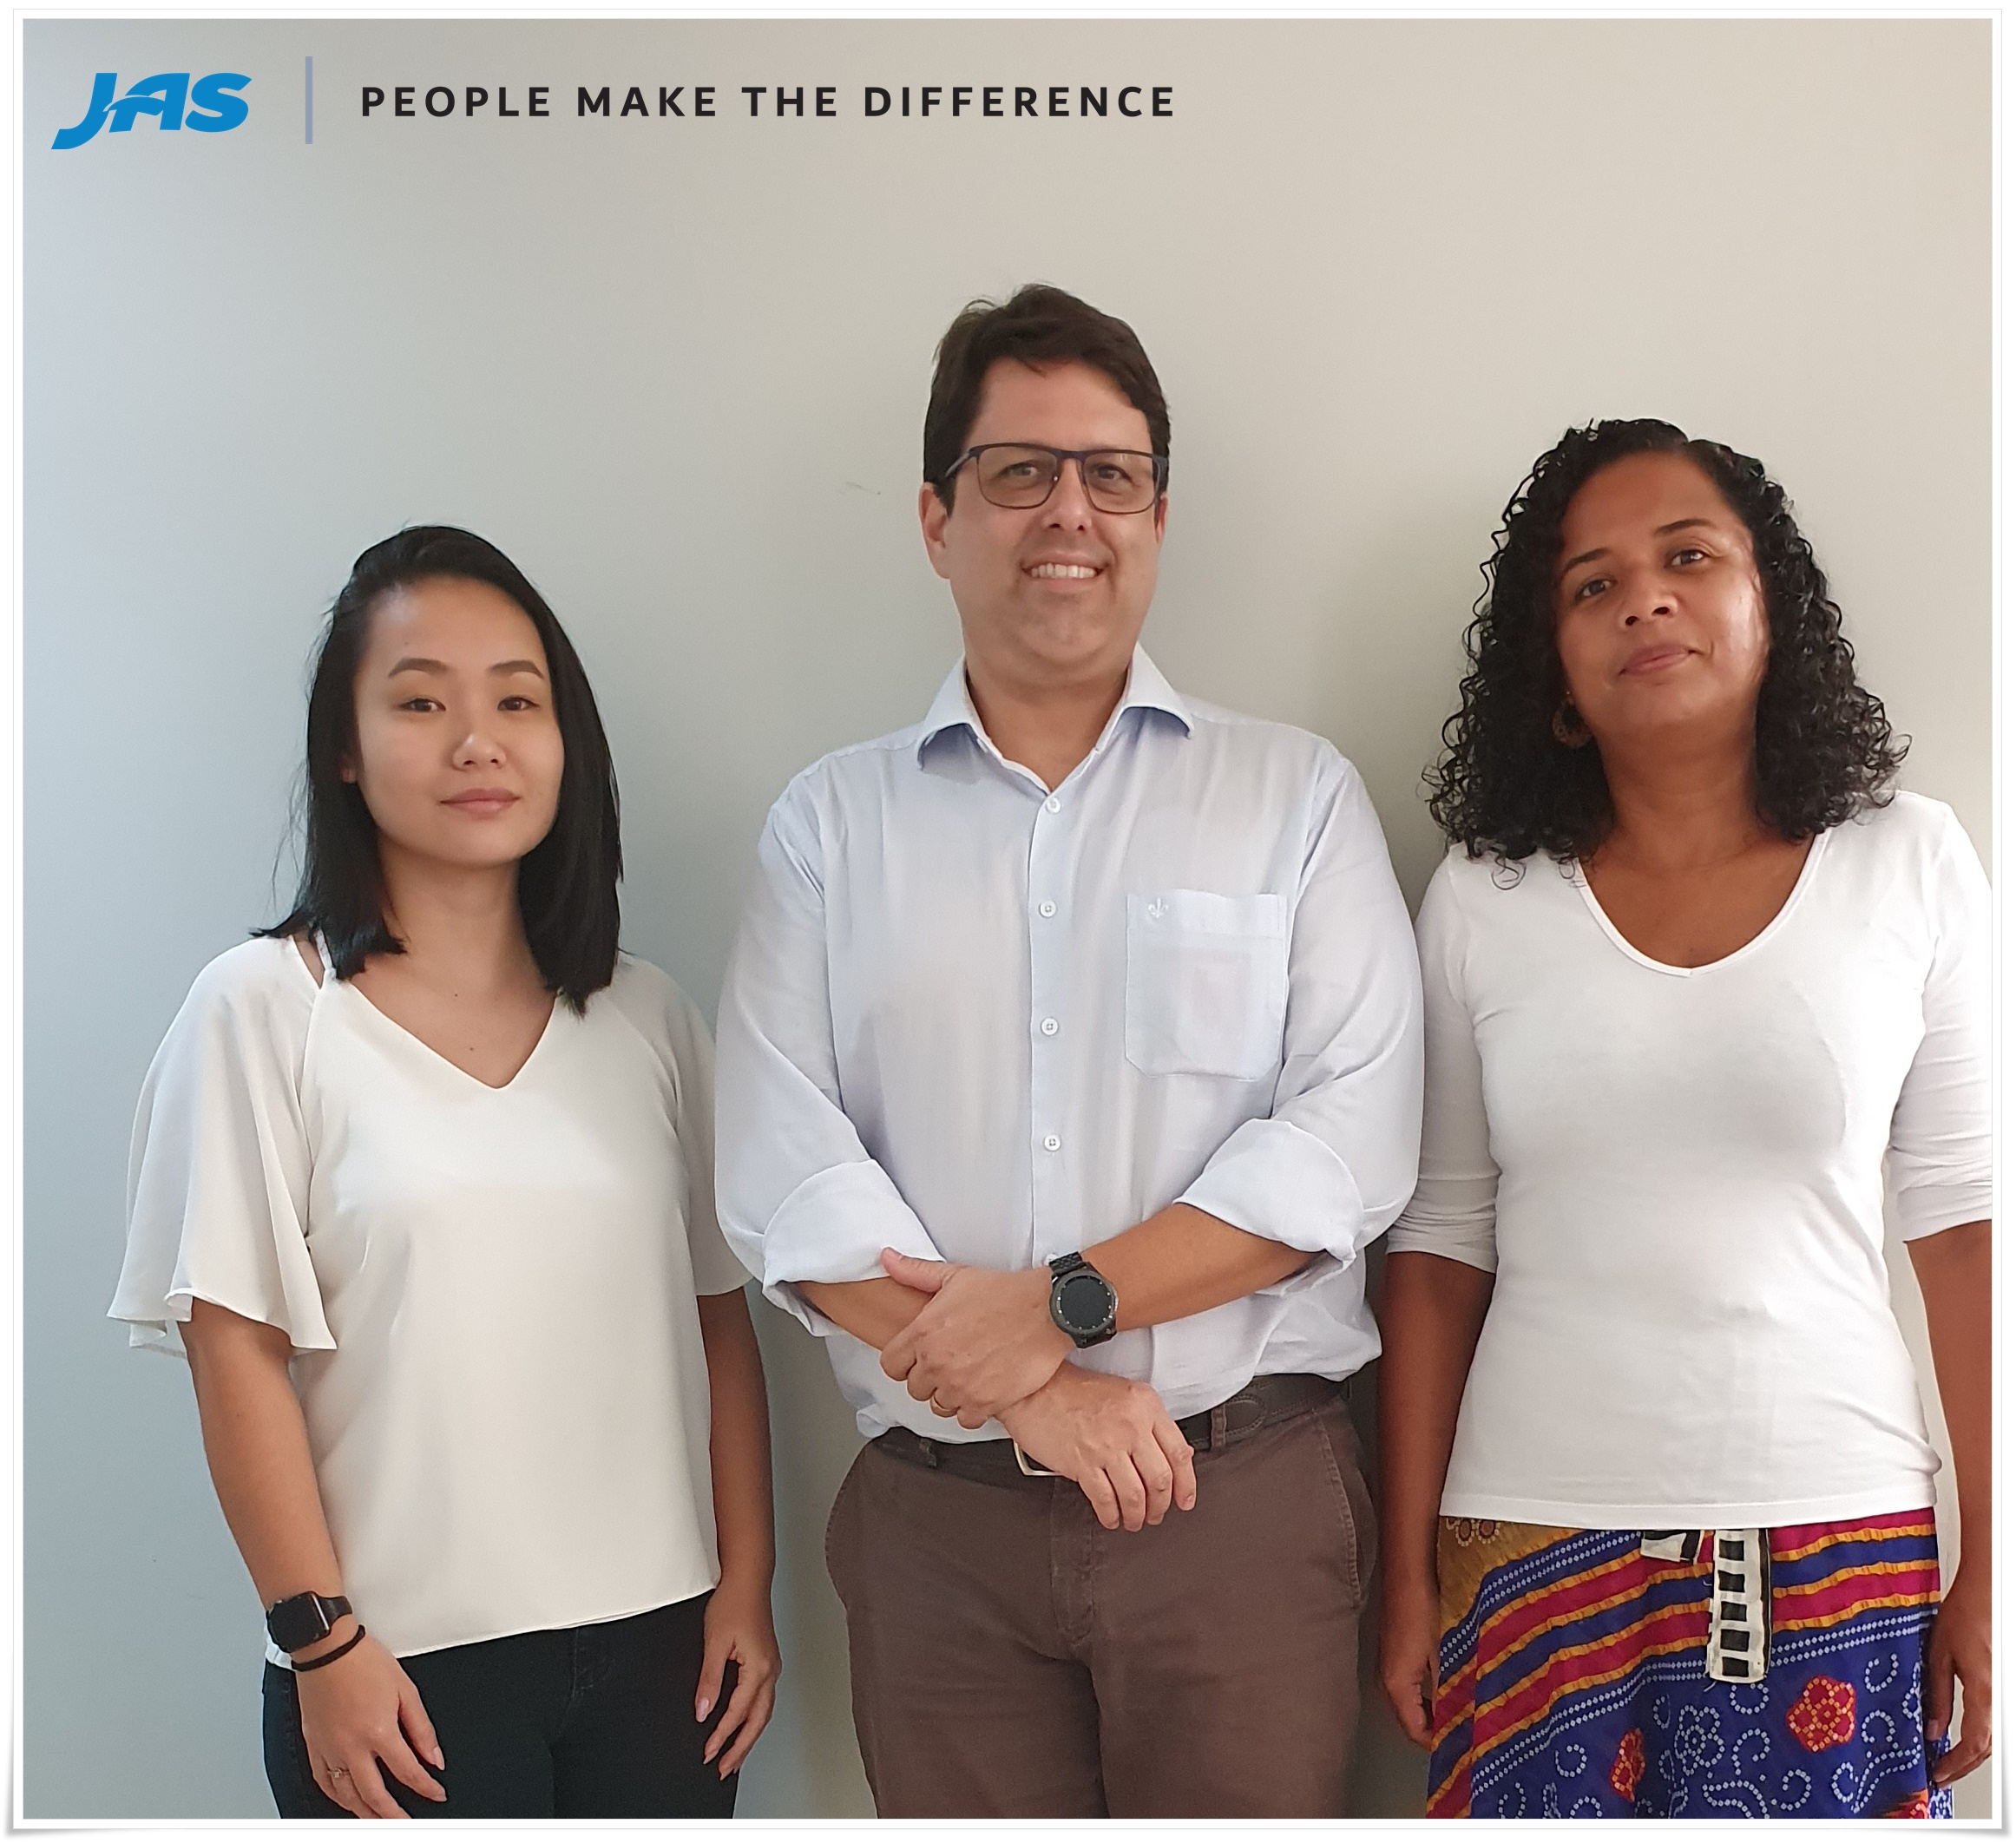 From left to right: Karina Mayeta - Operations Specialist, Bruno Lacerda - Business Development Manager, Eriene Fonseca- Operations Specialist